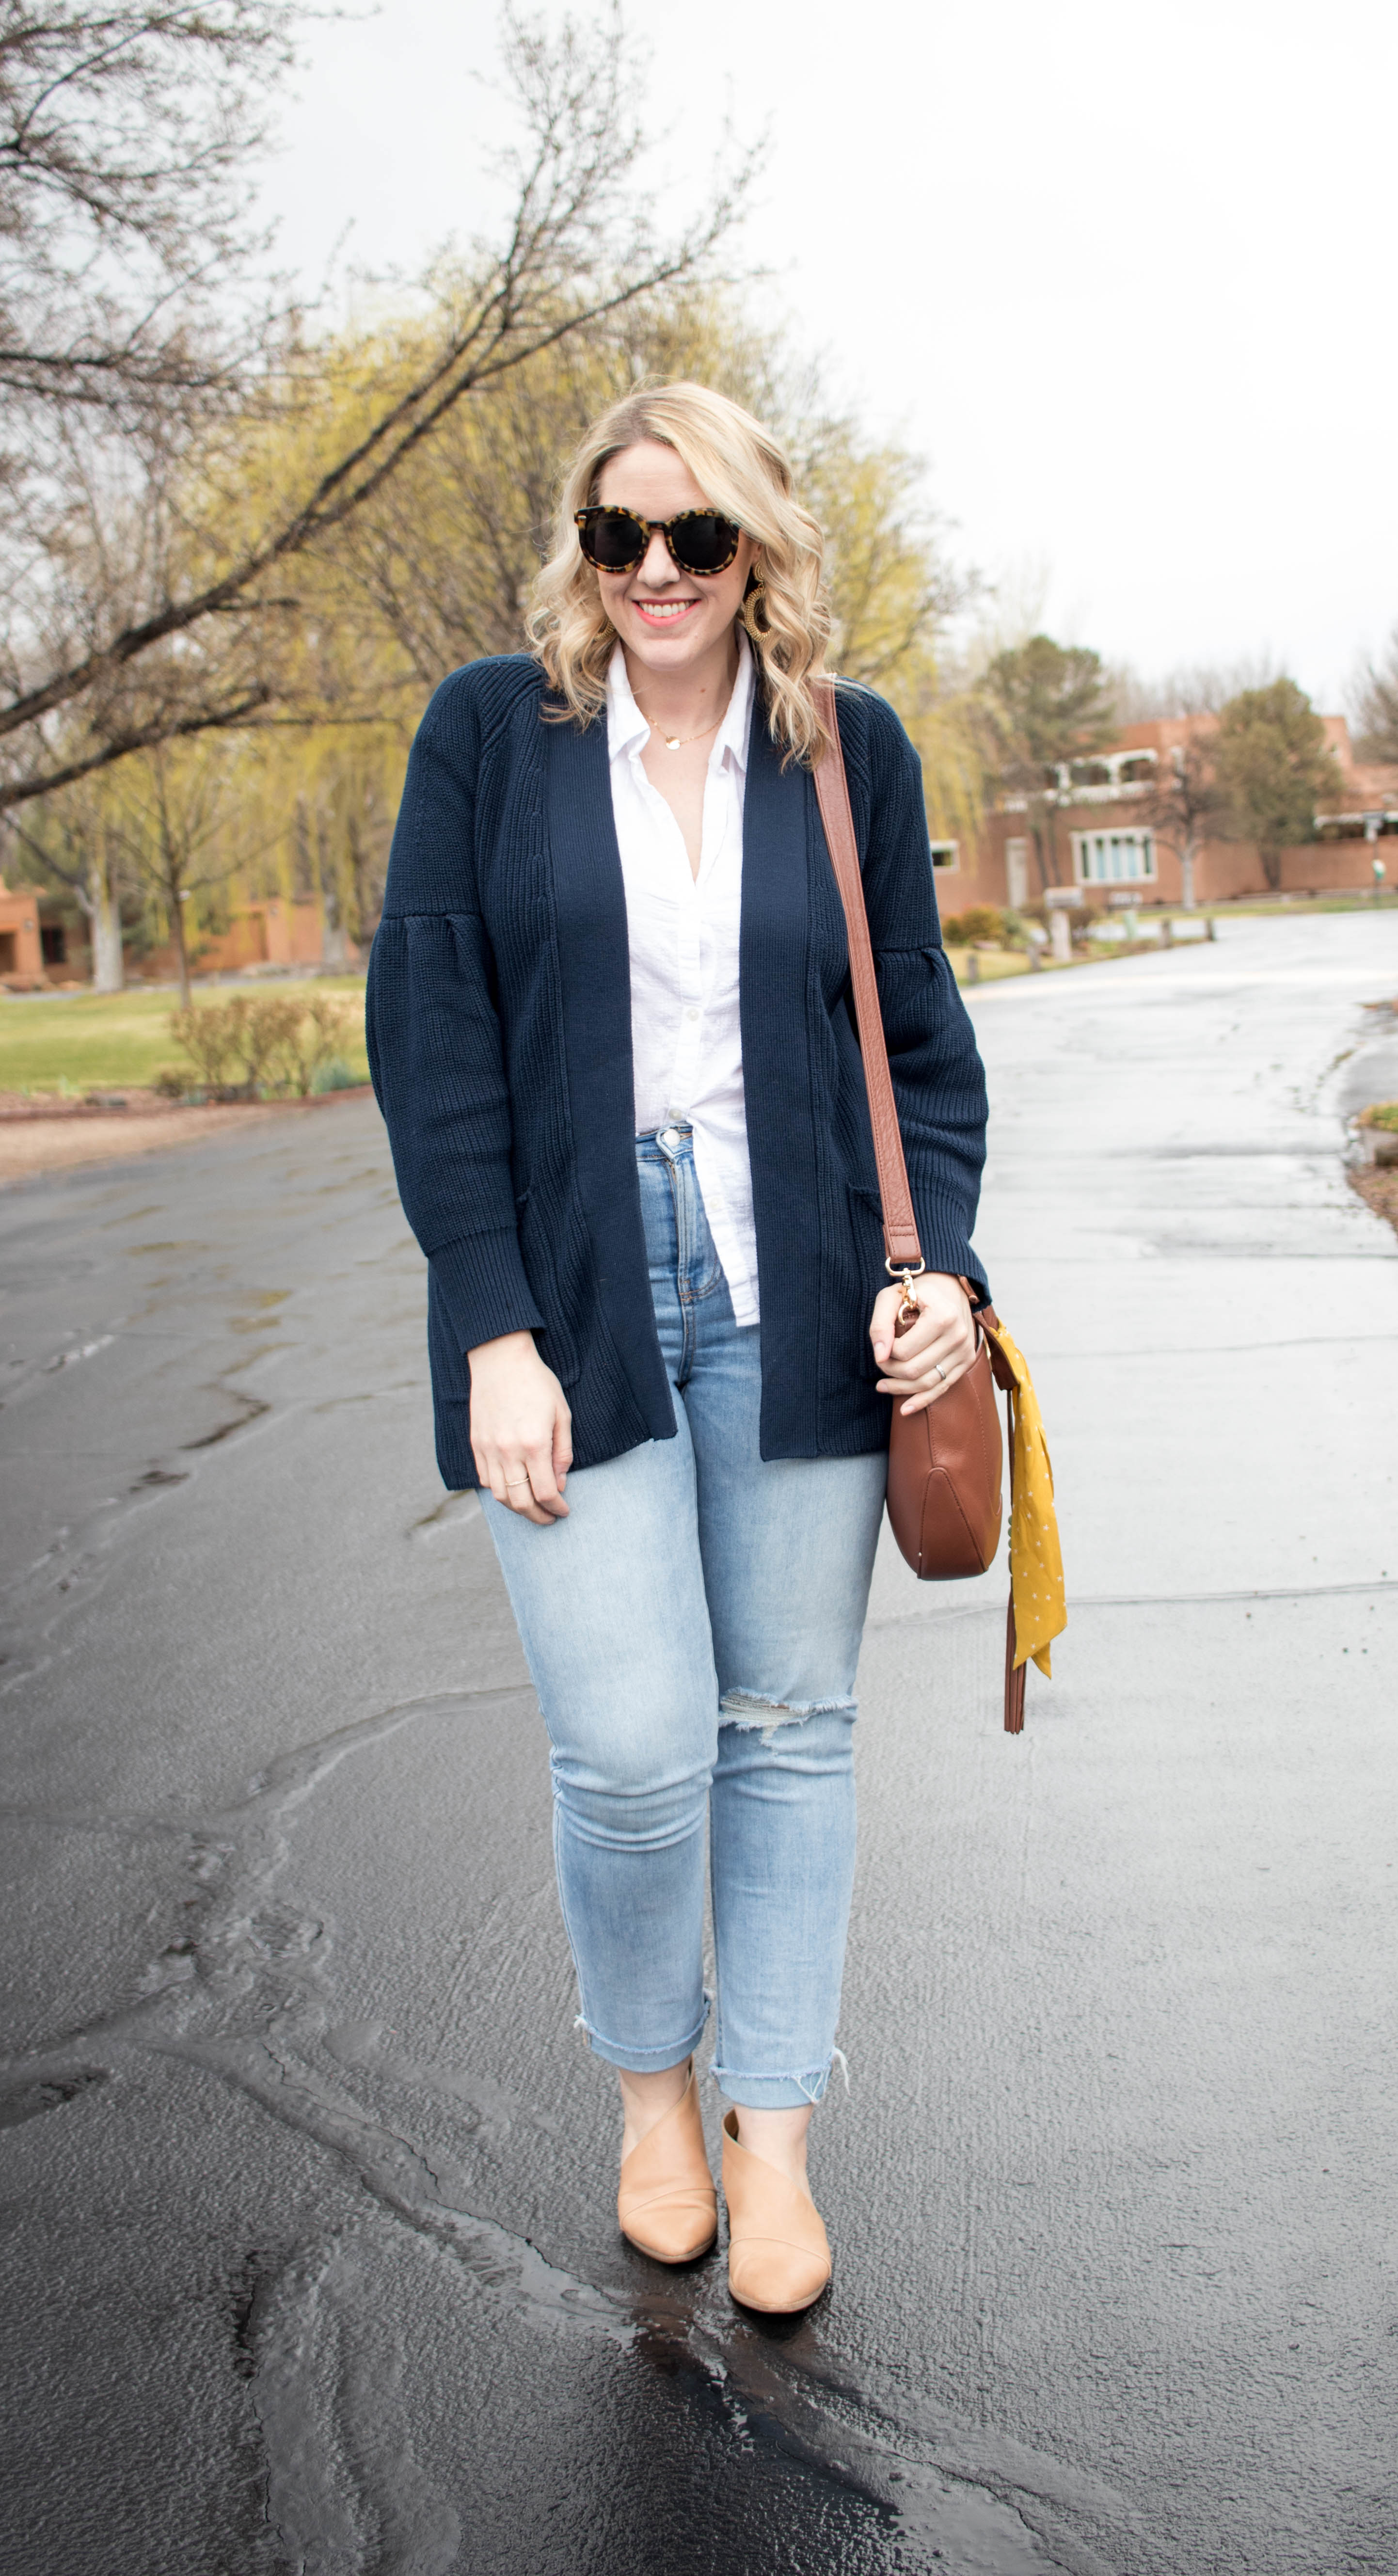 old navy spring outfit mom style #oldnavystyle #springfashion #styleblogger